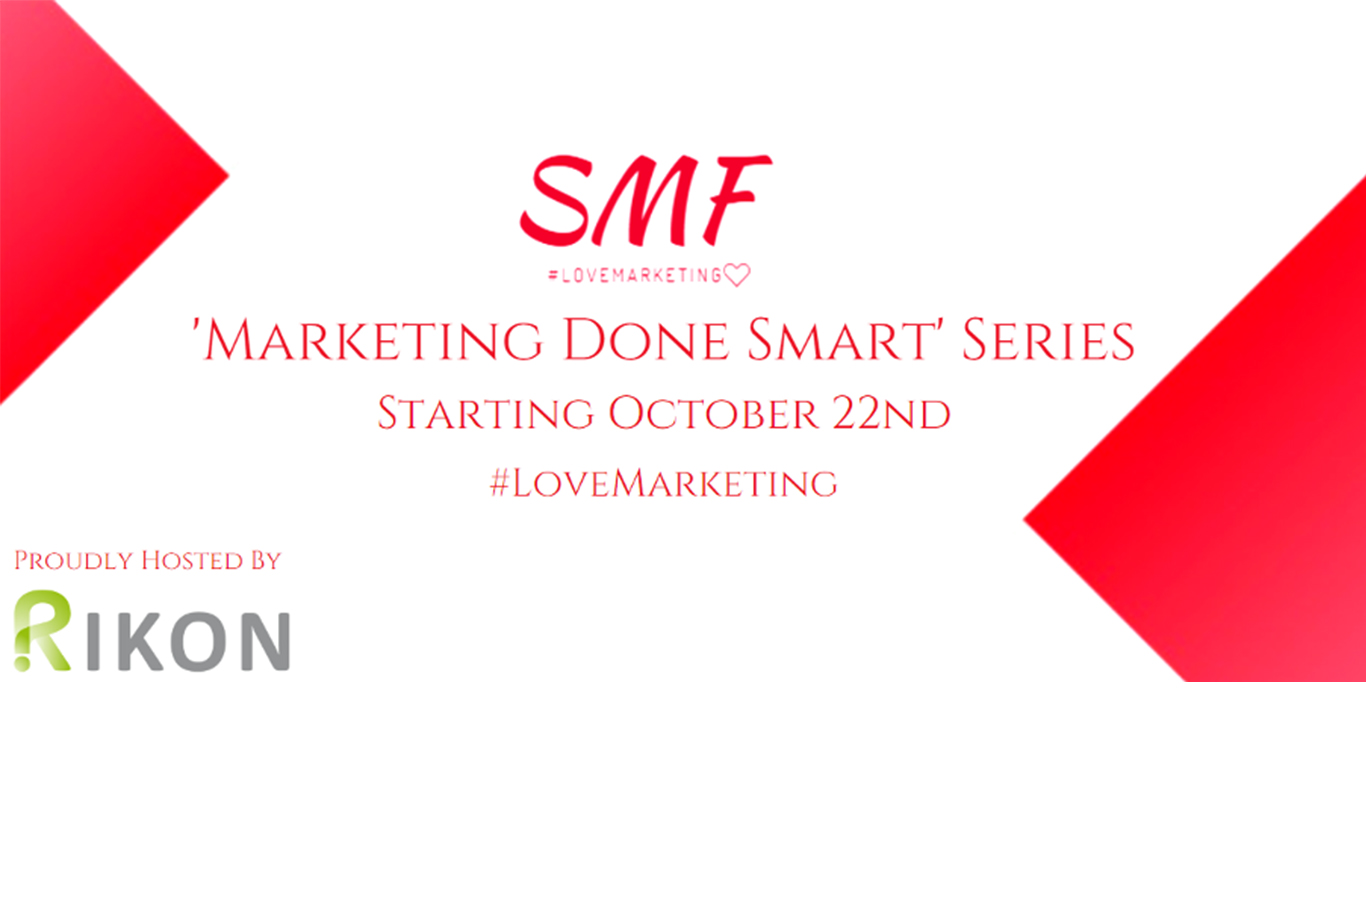 The 'Marketing Done Smart' webinar series will feature expert advice from the RIKON team